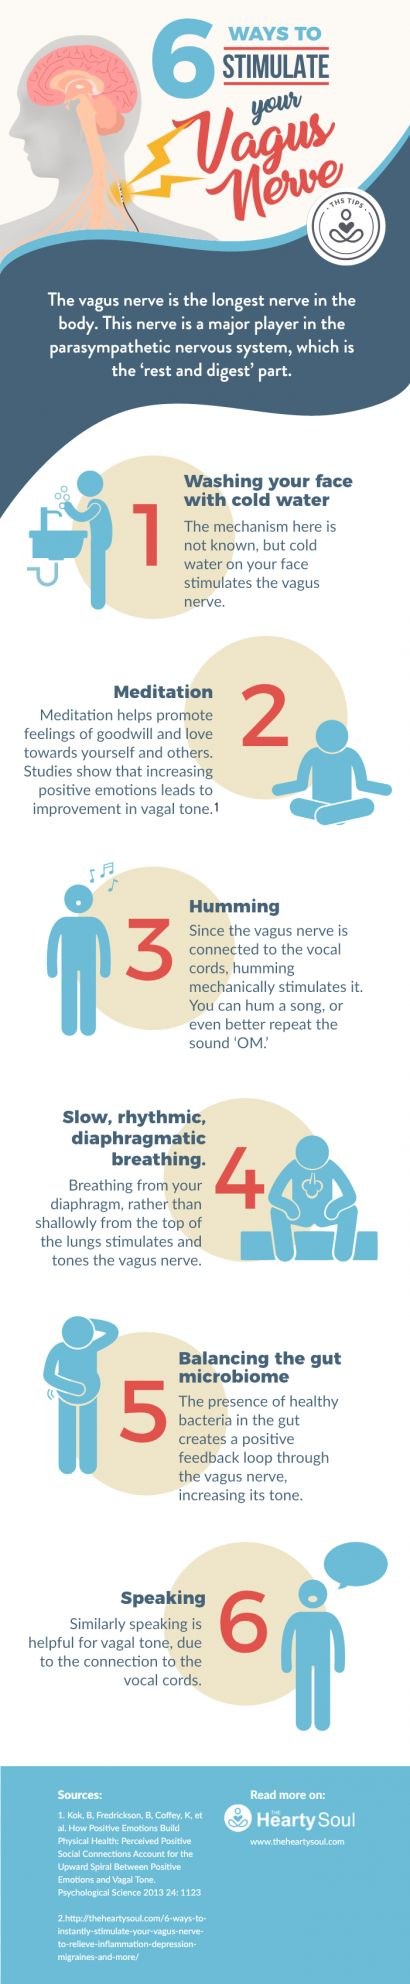 vagus nerve stimulation: Learn how to gently and naturally stimulate your vagus nerve to improve inflammation and the nervous system.